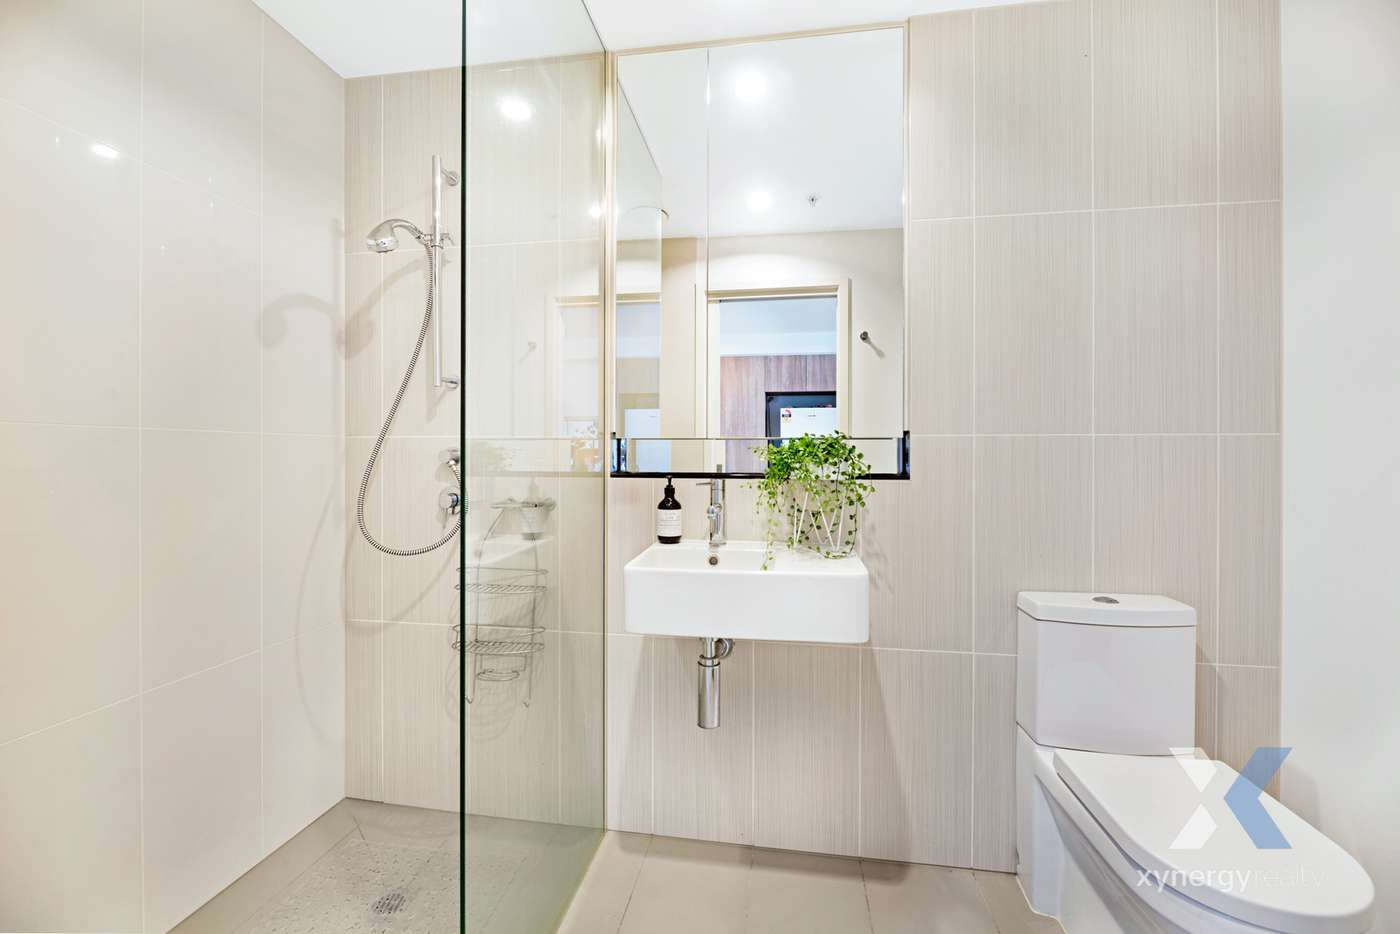 Fifth view of Homely apartment listing, 611/35 Malcolm Street, South Yarra VIC 3141